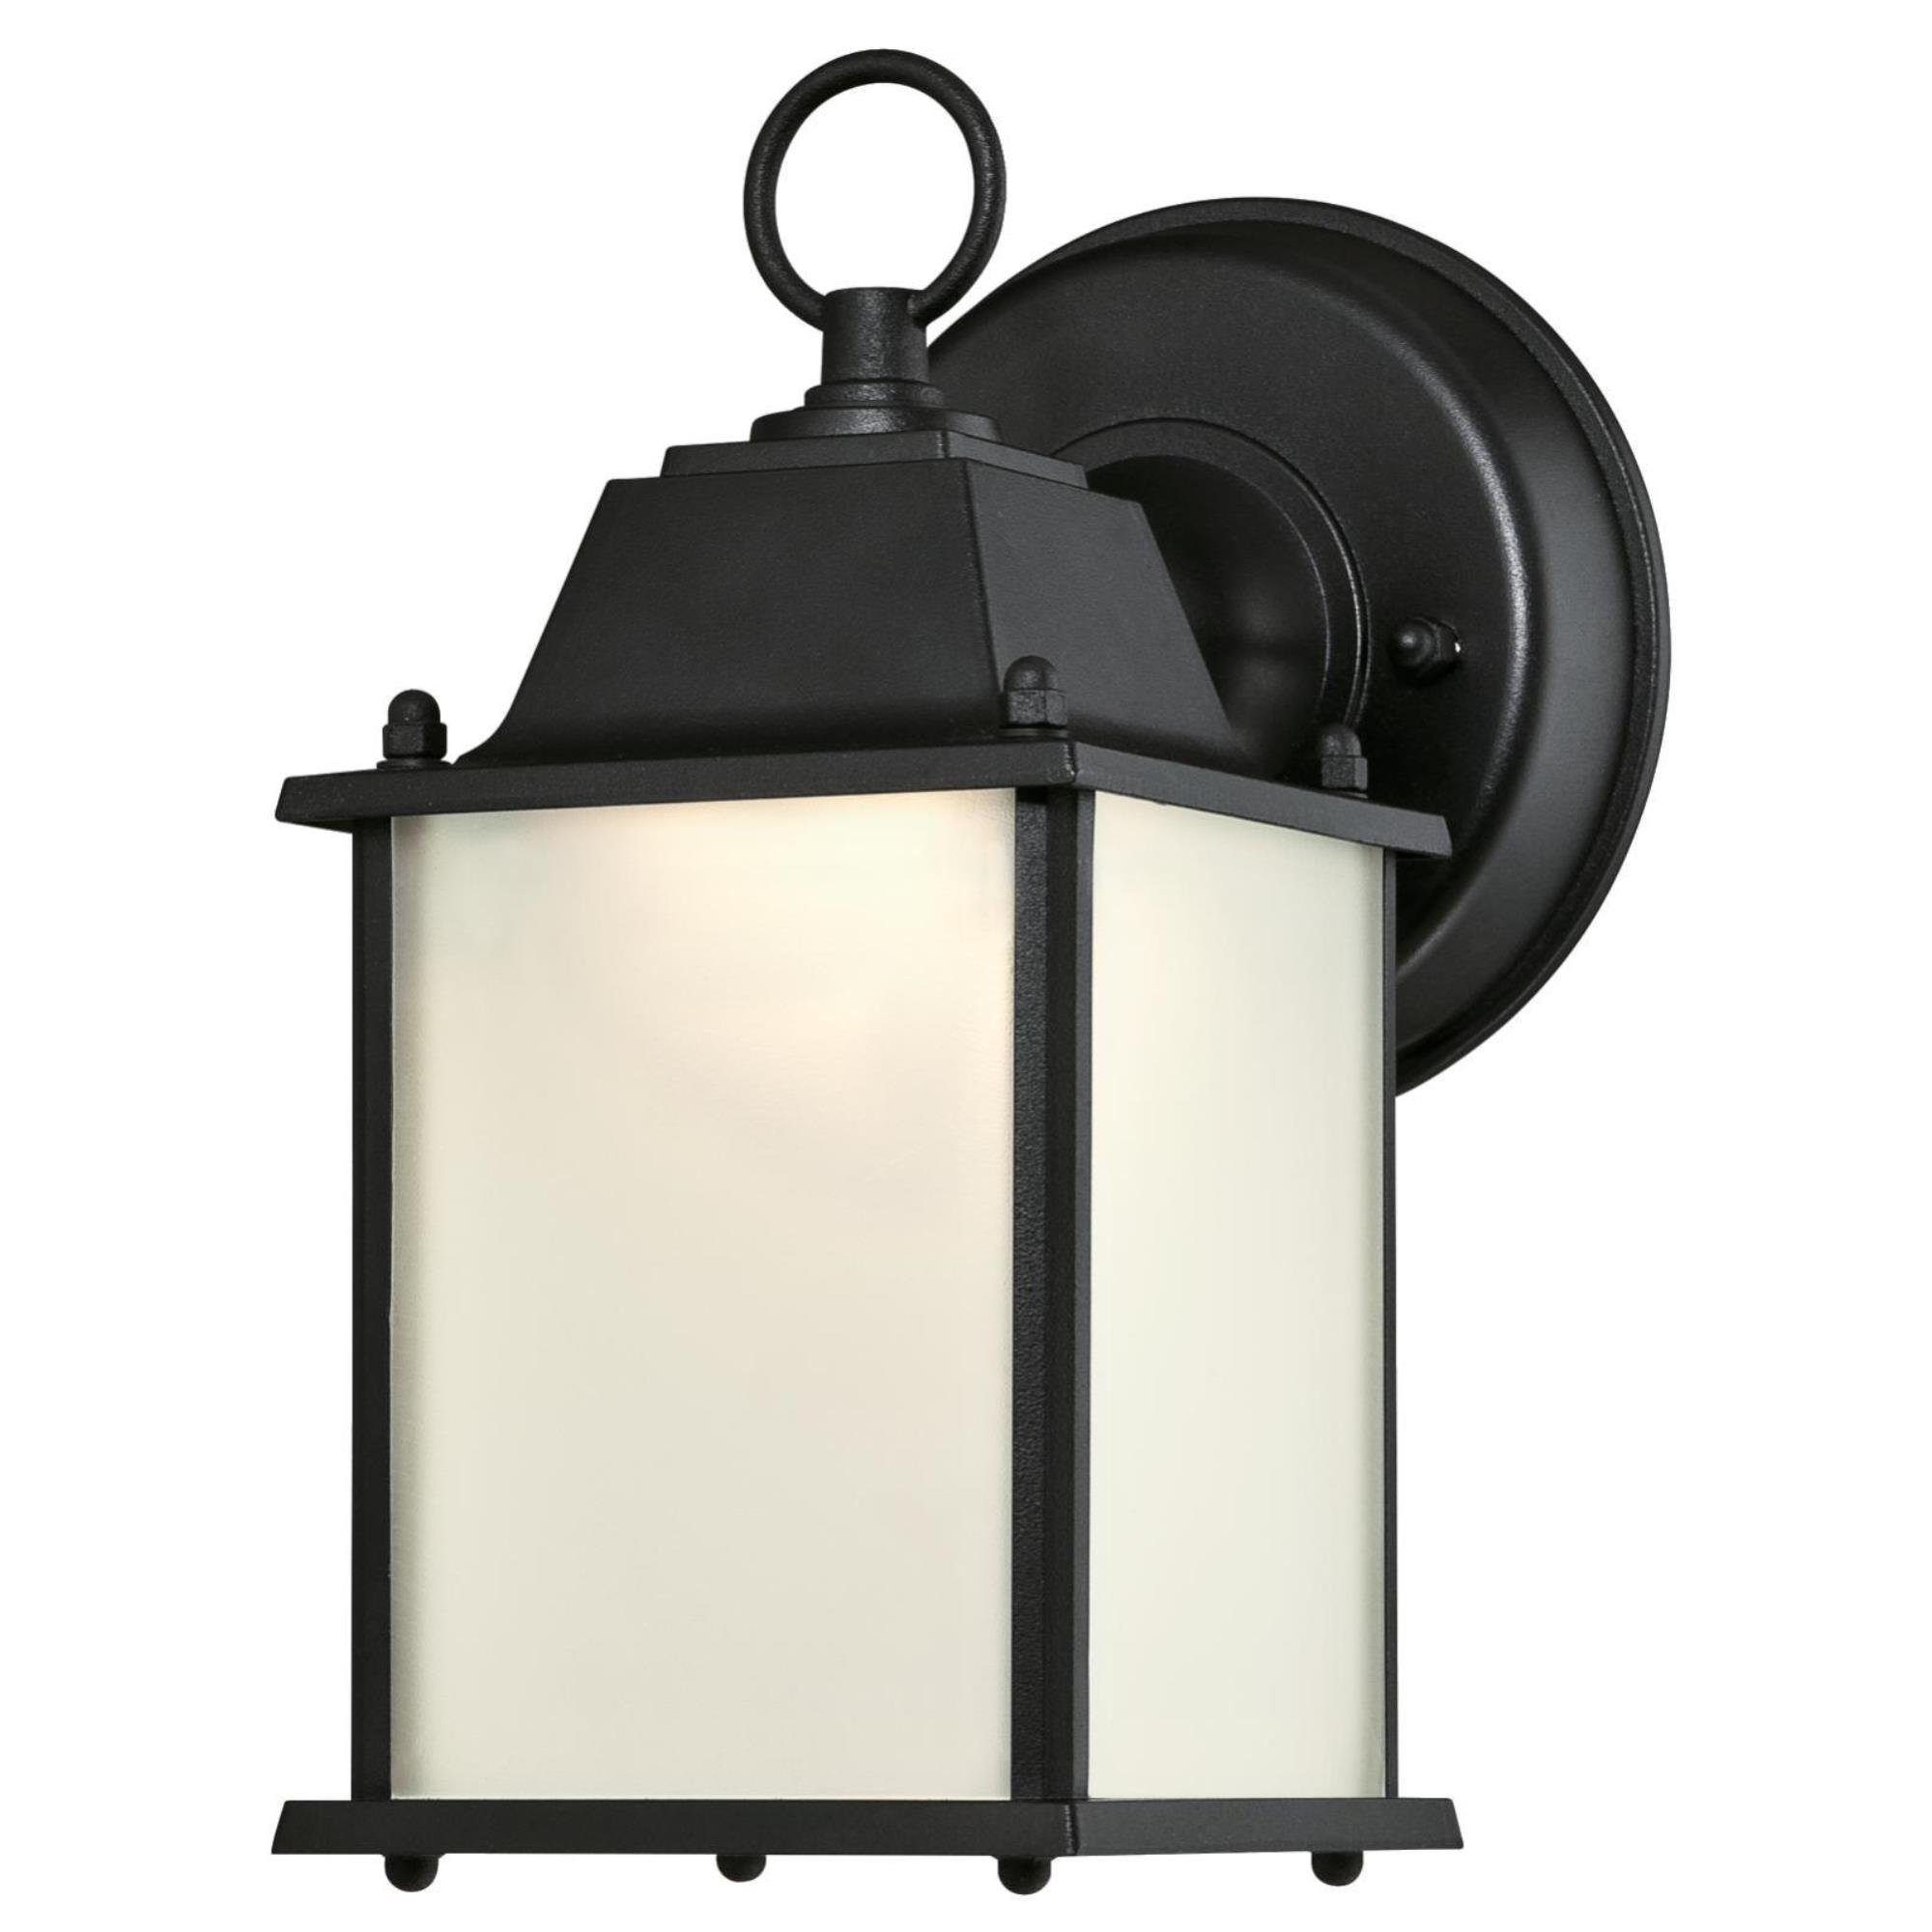 Westinghouse Lighting 6107500 LED Outdoor Fixture by Westinghouse Lighting